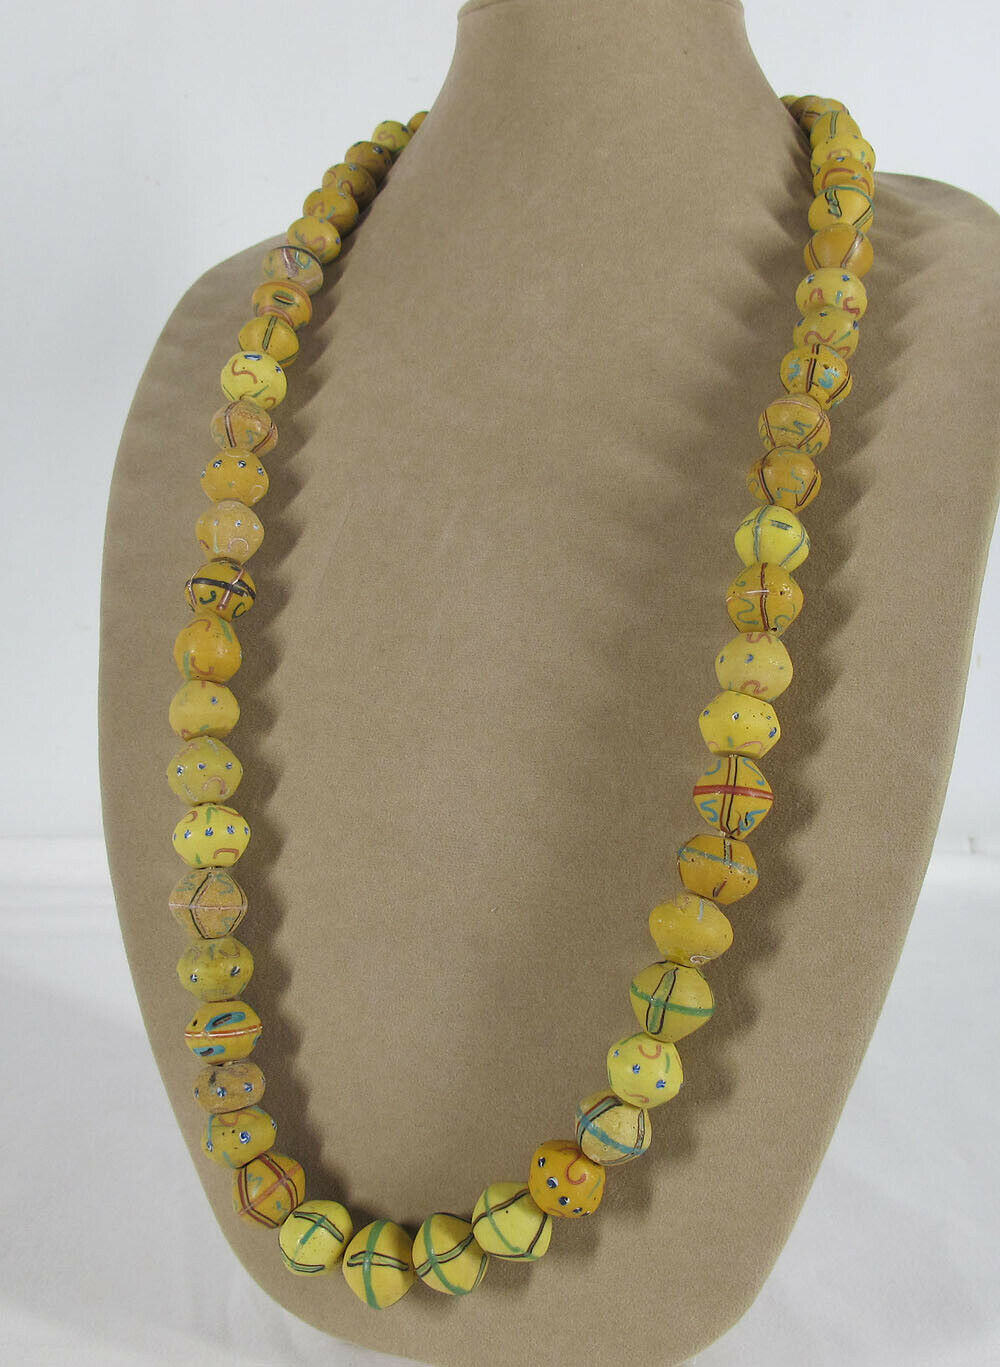 Lot 56 Antique Venetian Glass Beads From West Africa King Beads Necklace Yqz Relic Road Antiques Relics And Rare Collectables